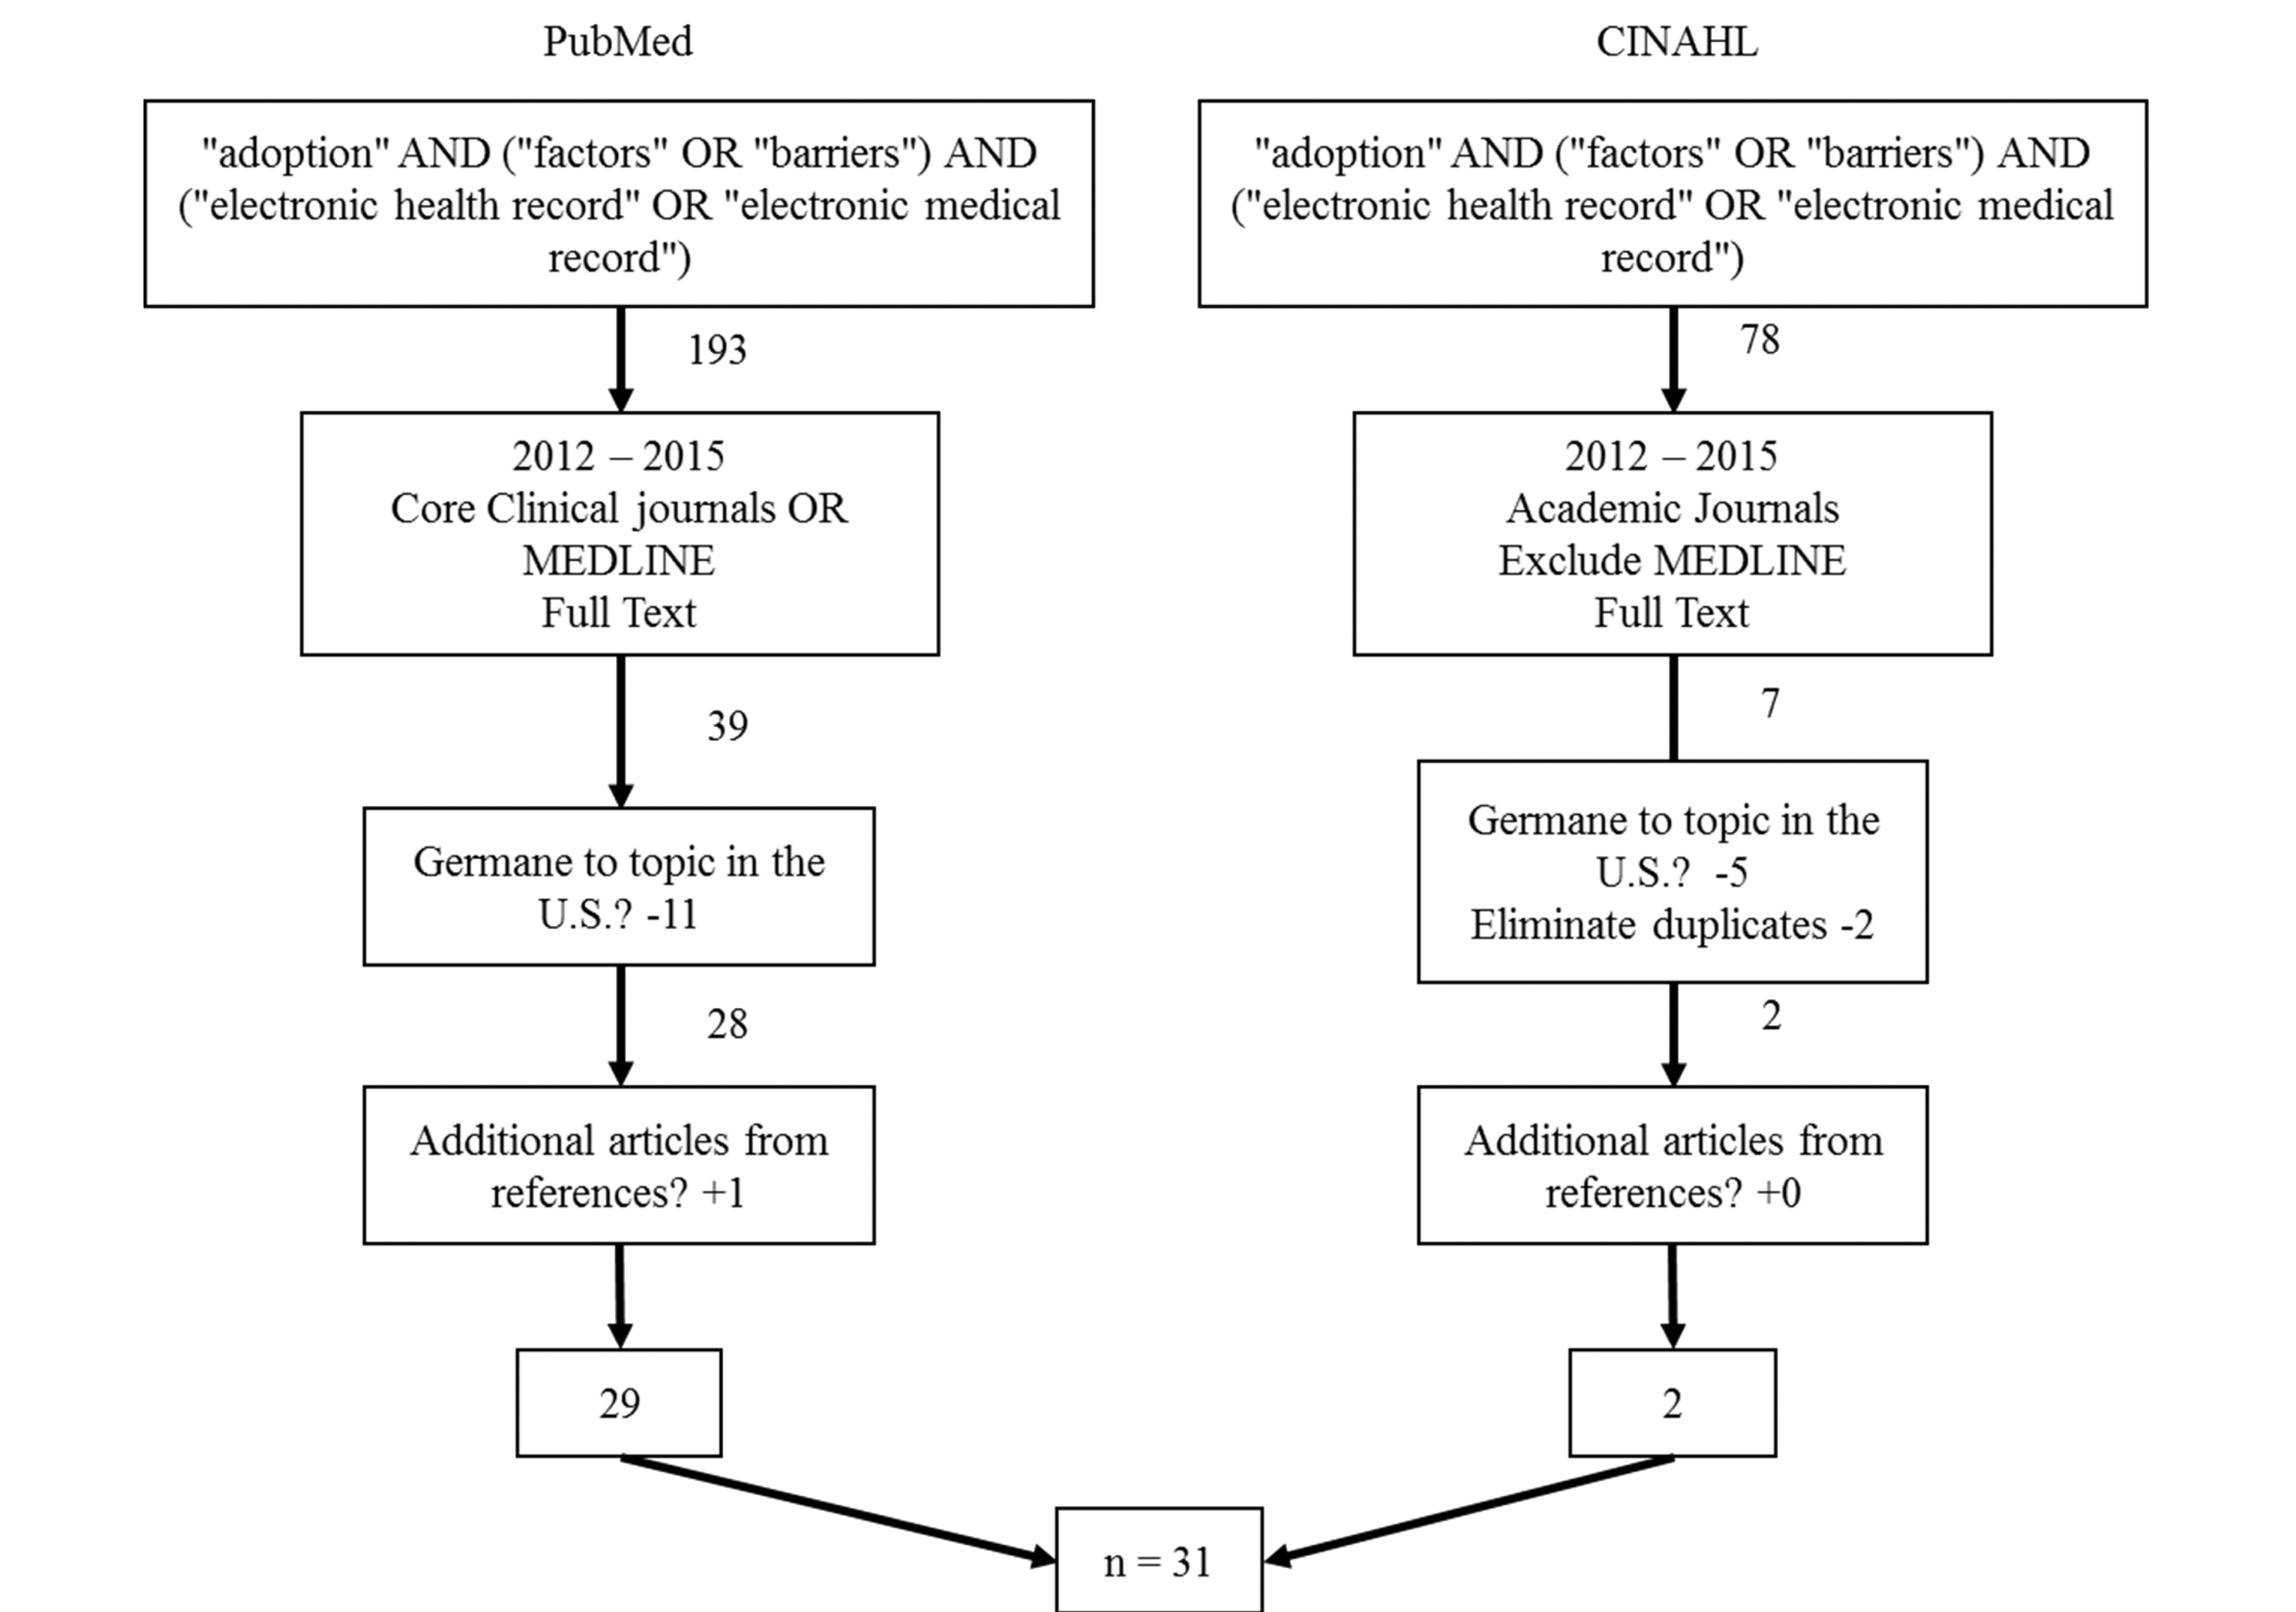 JMI - Adoption Factors of the Electronic Health Record: A